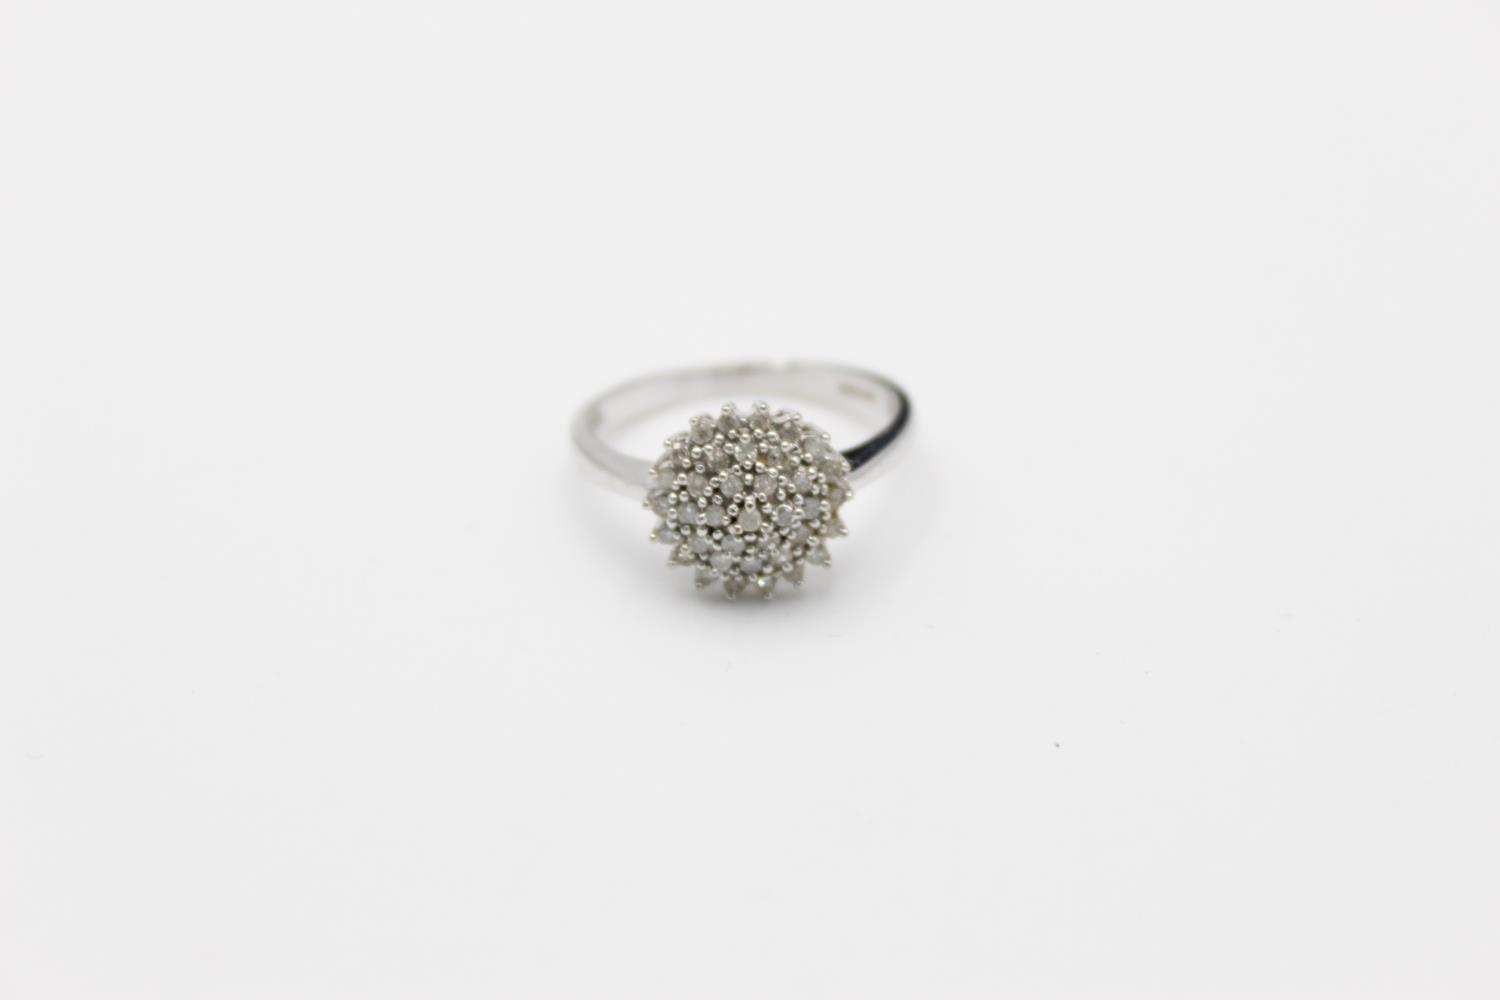 9ct white gold diamond cluster ring 3.4g Size P